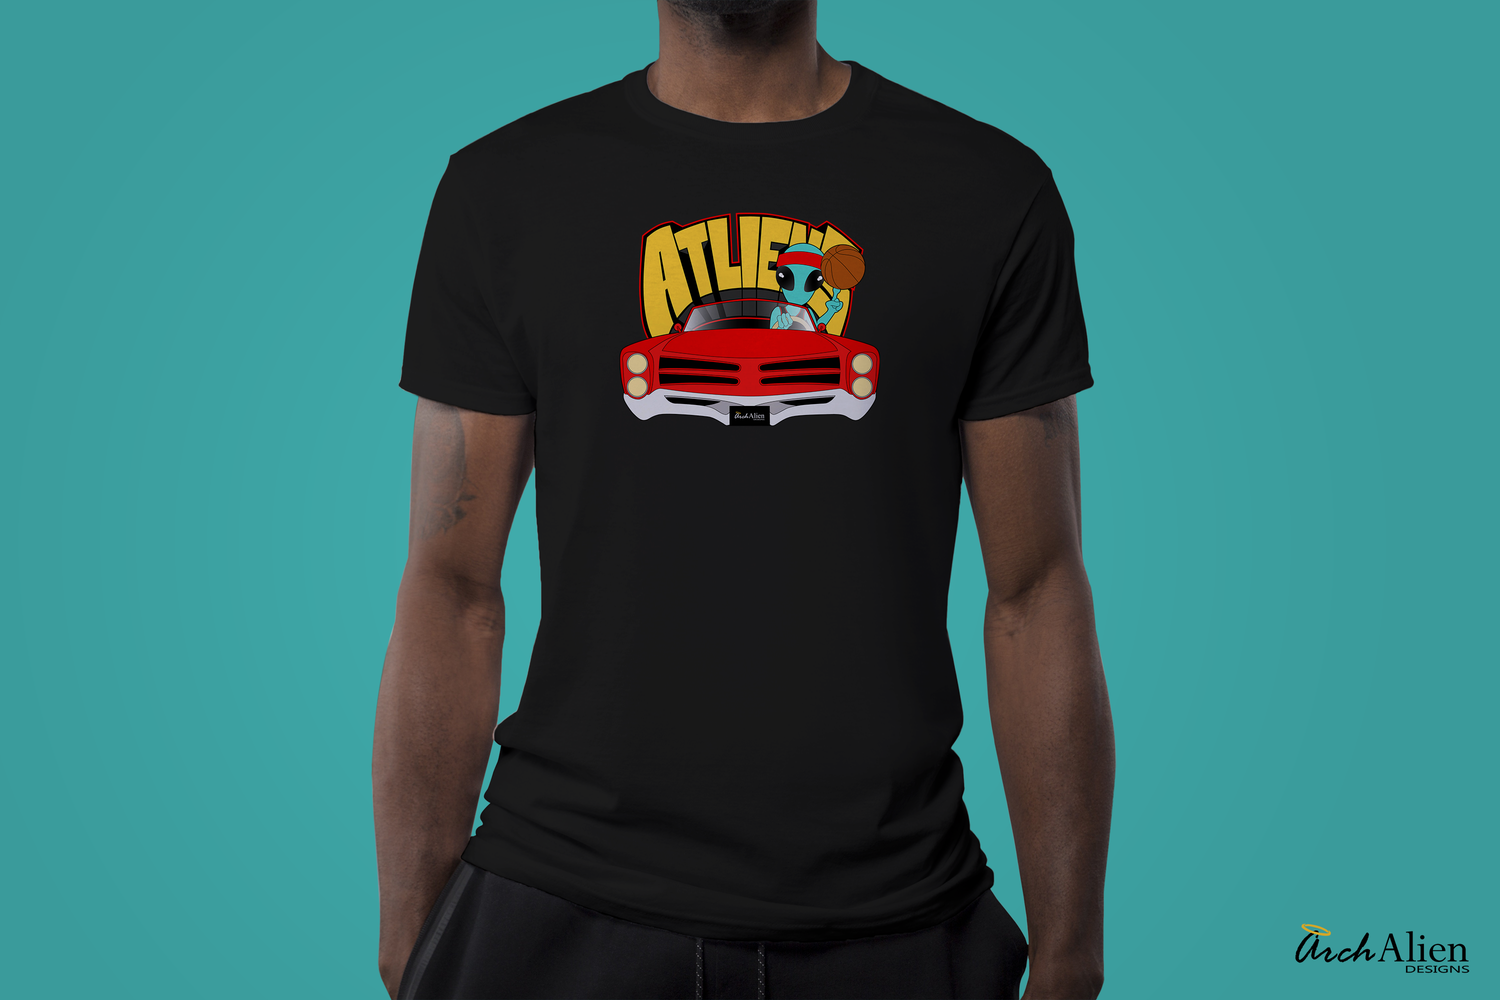 Image of ATLiens Basketball Club (T-Shirt)